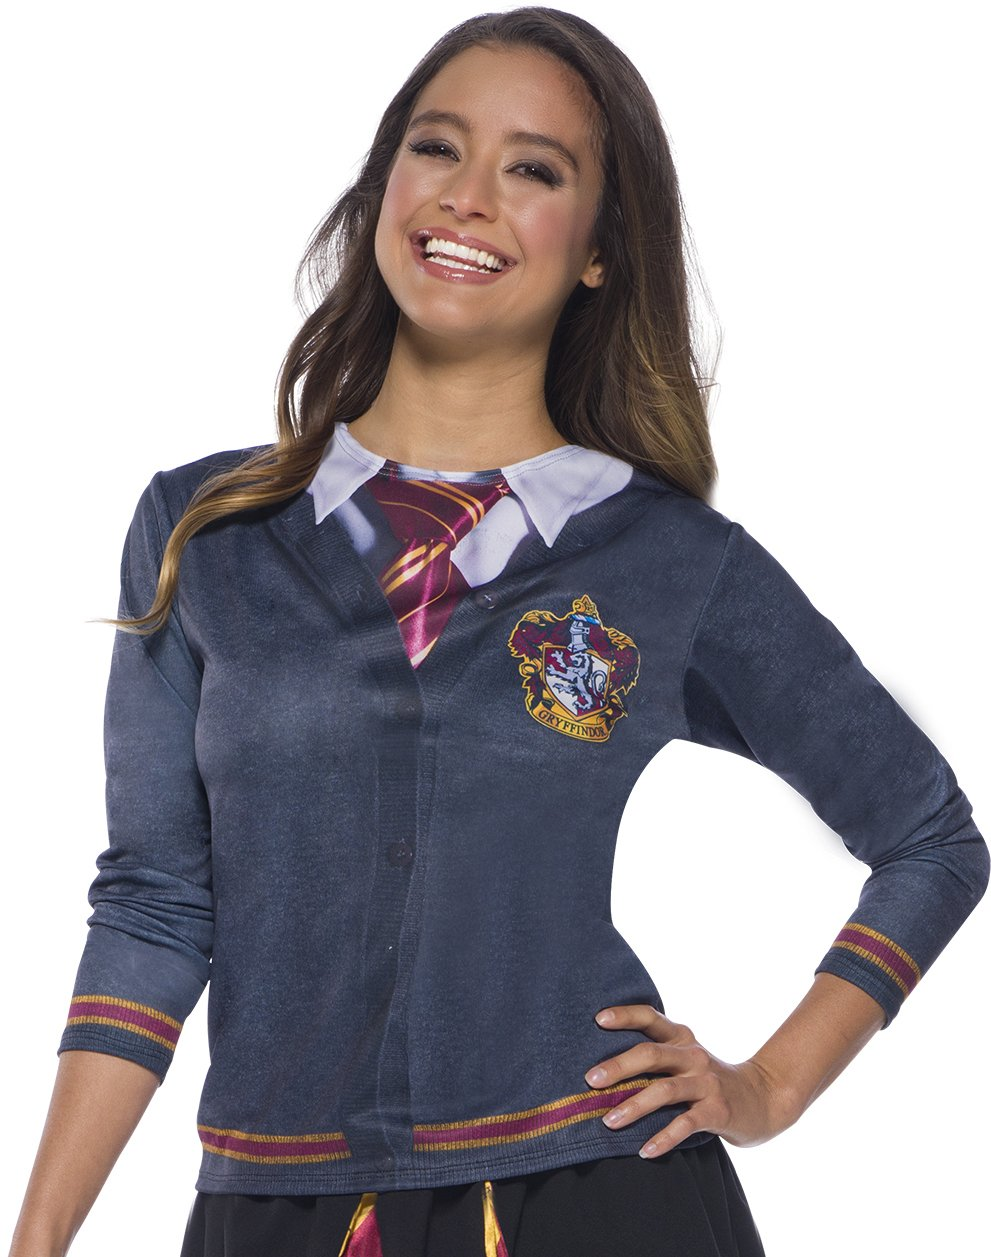 Rubie's Costume Co Harry Potter Costume Top, Slytherin, Small Rubie' s Costume Co 821145_S